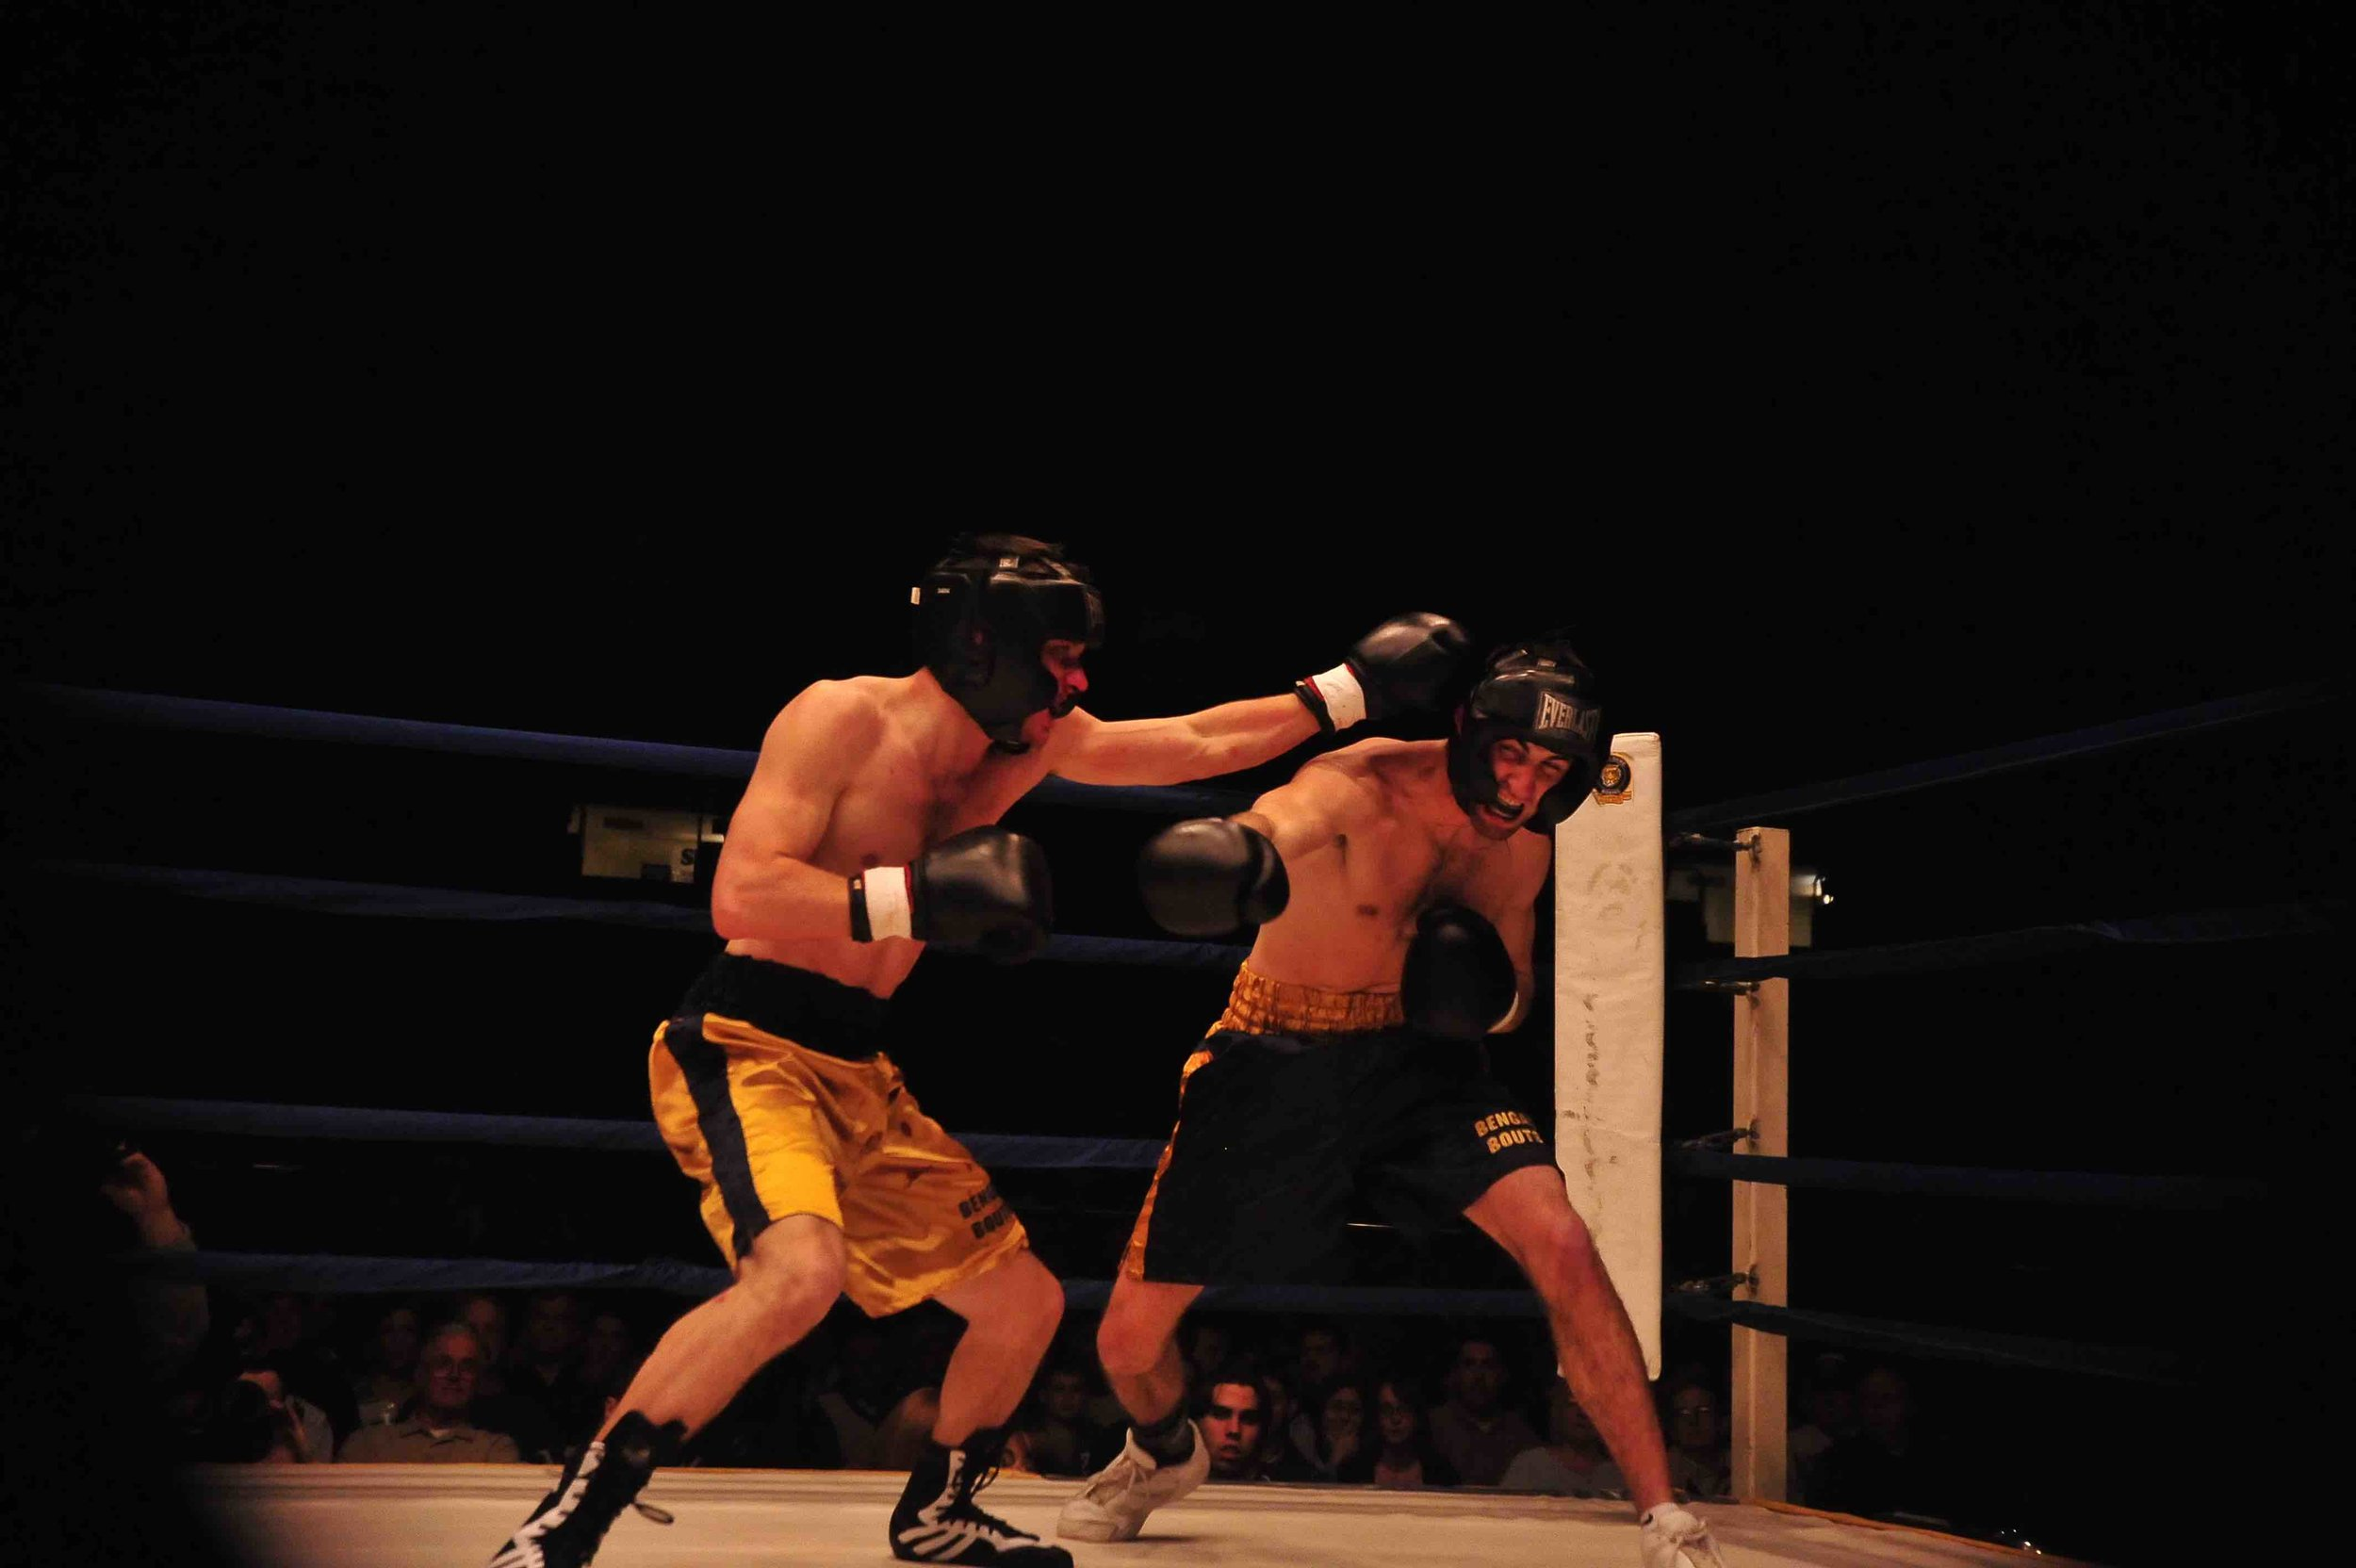 Mark Weber (left) competes with Bobby Powers (right) in the 2009 Bengal Bouts finals at the University of Notre Dame.